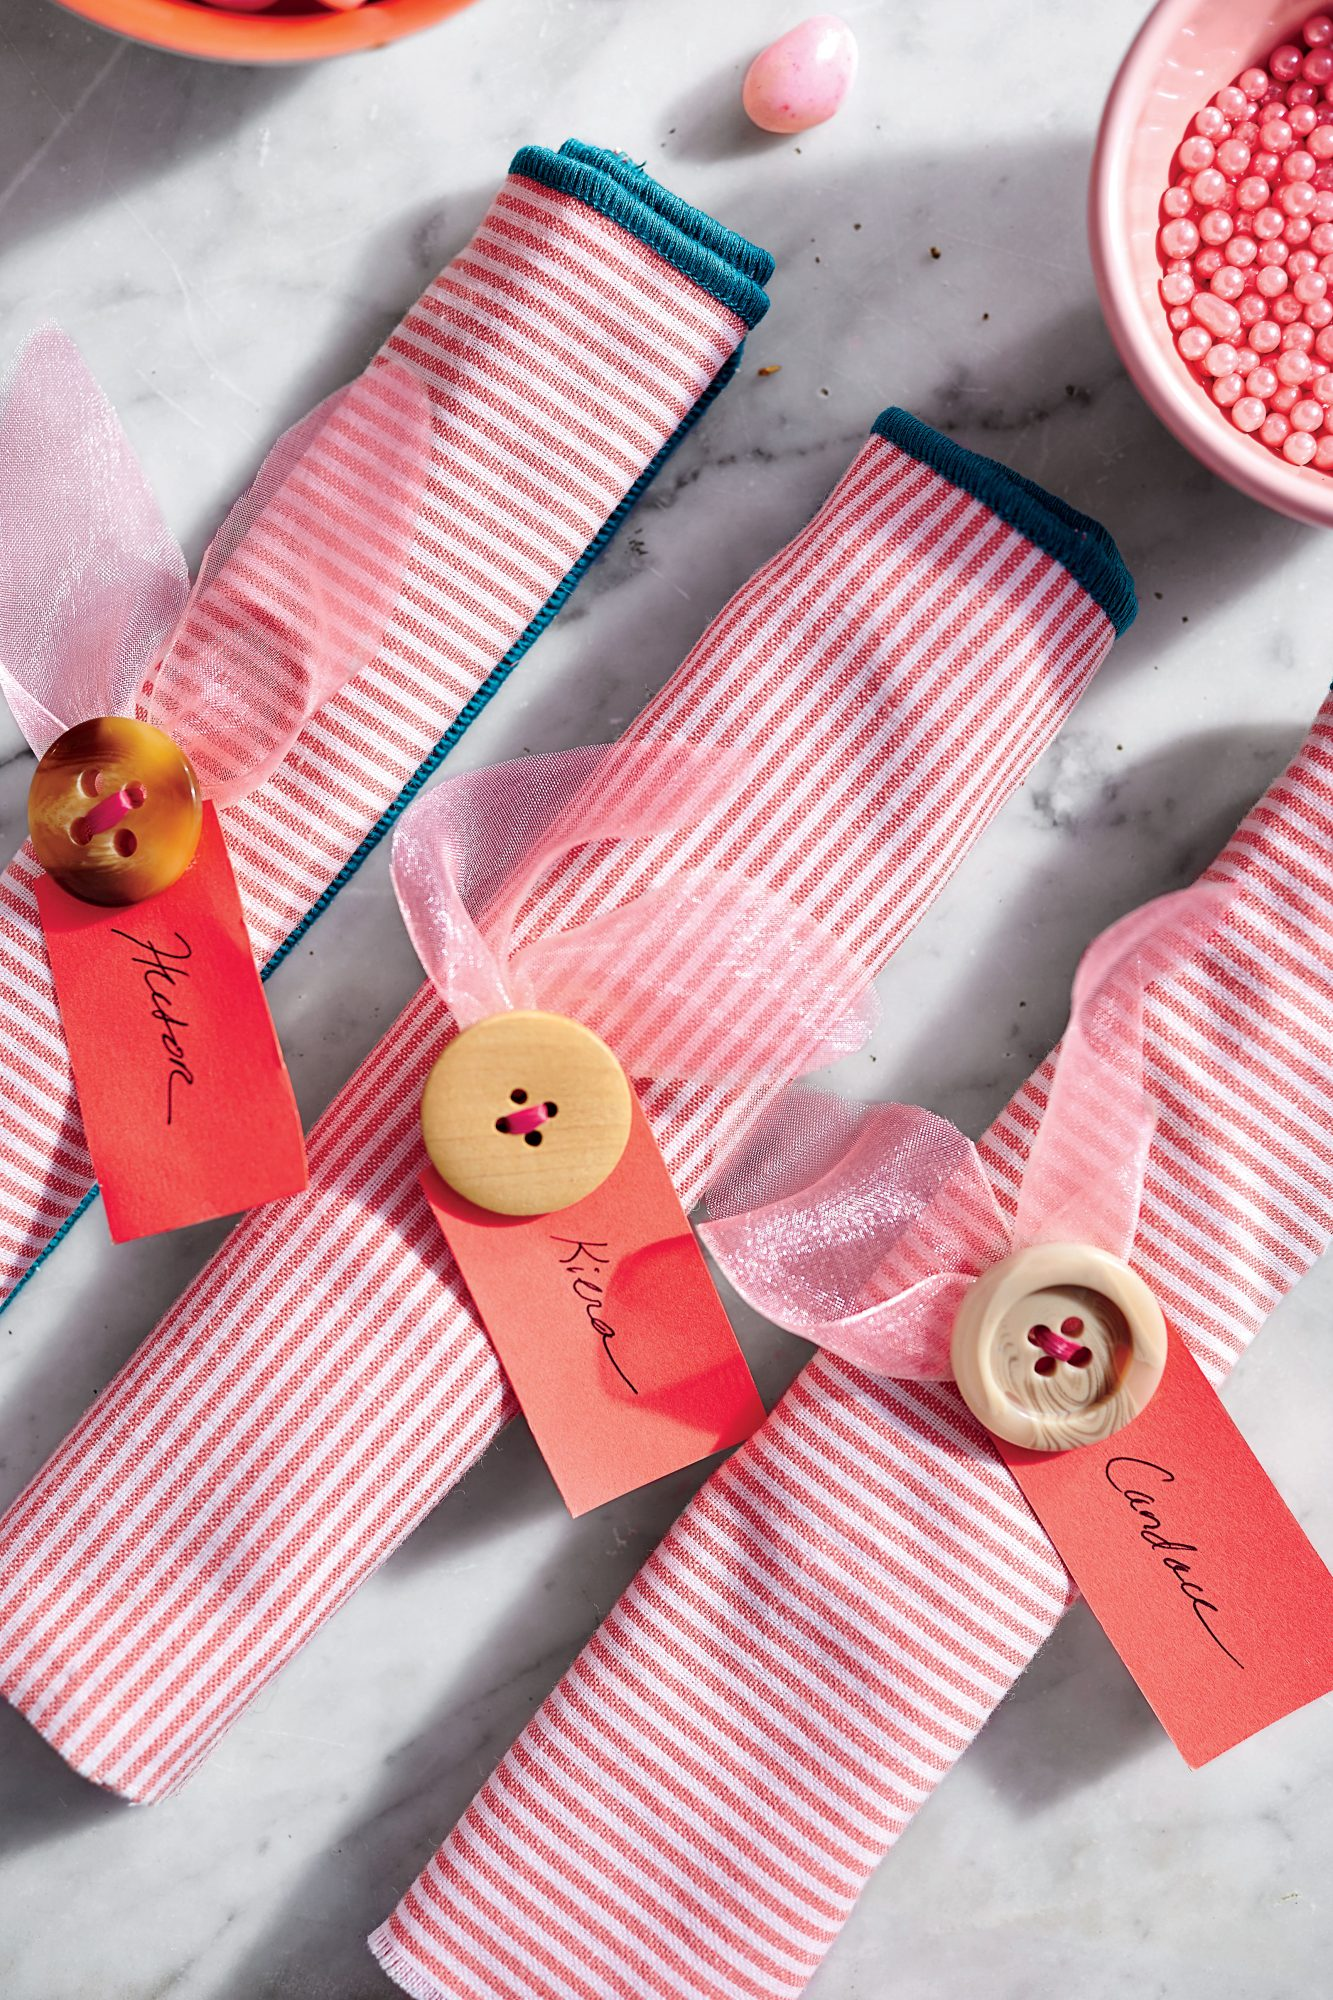 Button and Ribbon Napkin Rings with Pink Napkins